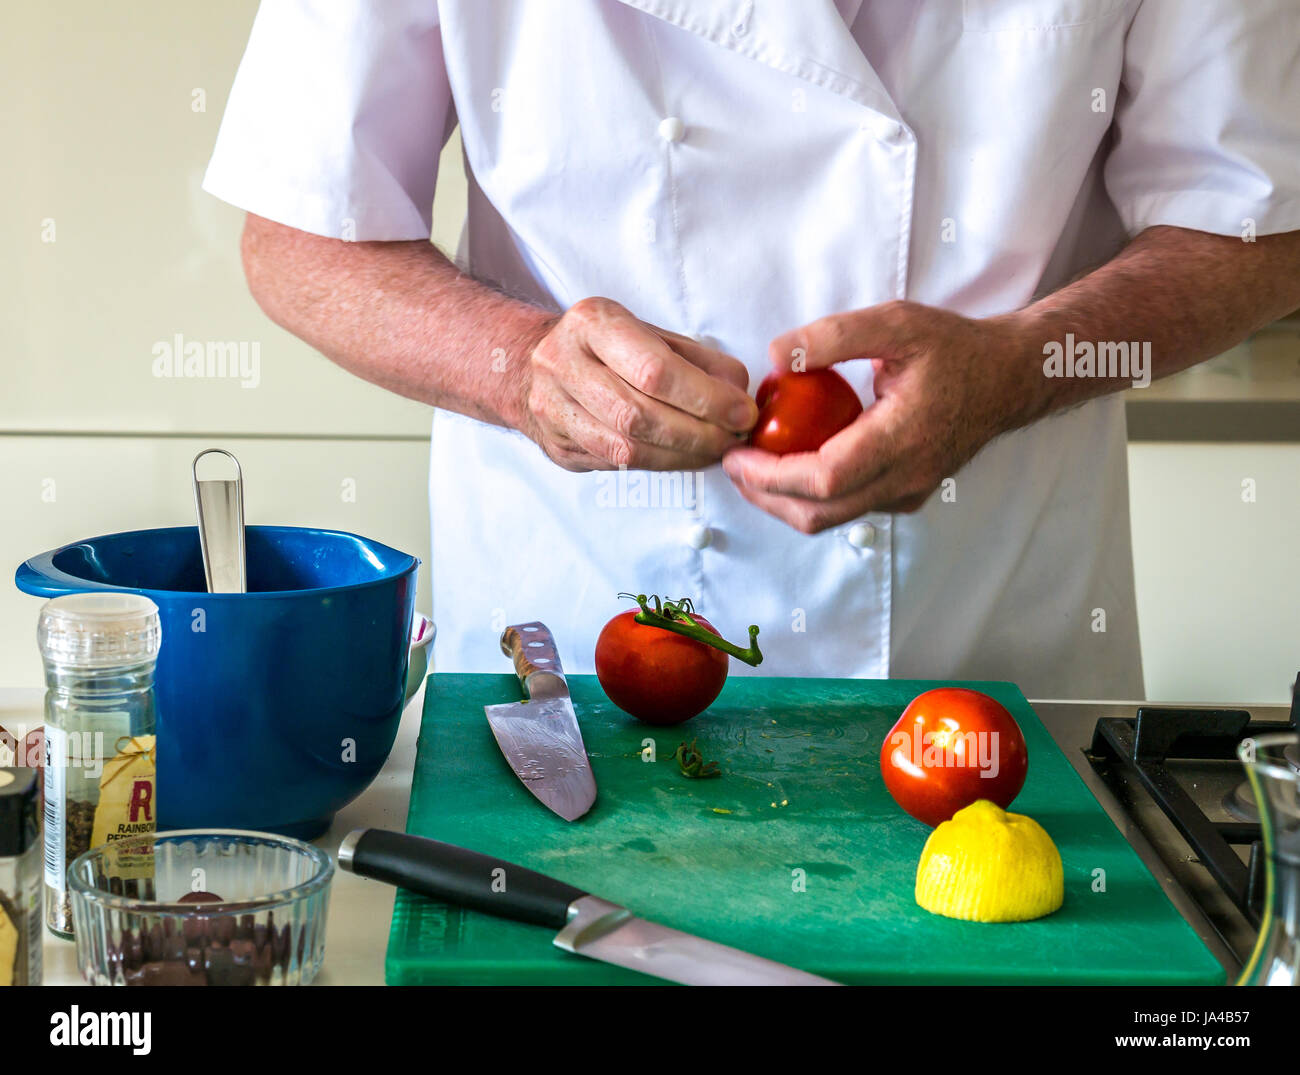 A man in chef whites preparing tomatoes on a green chopping board on a kitchen counter with other kitchen utensils - Stock Image